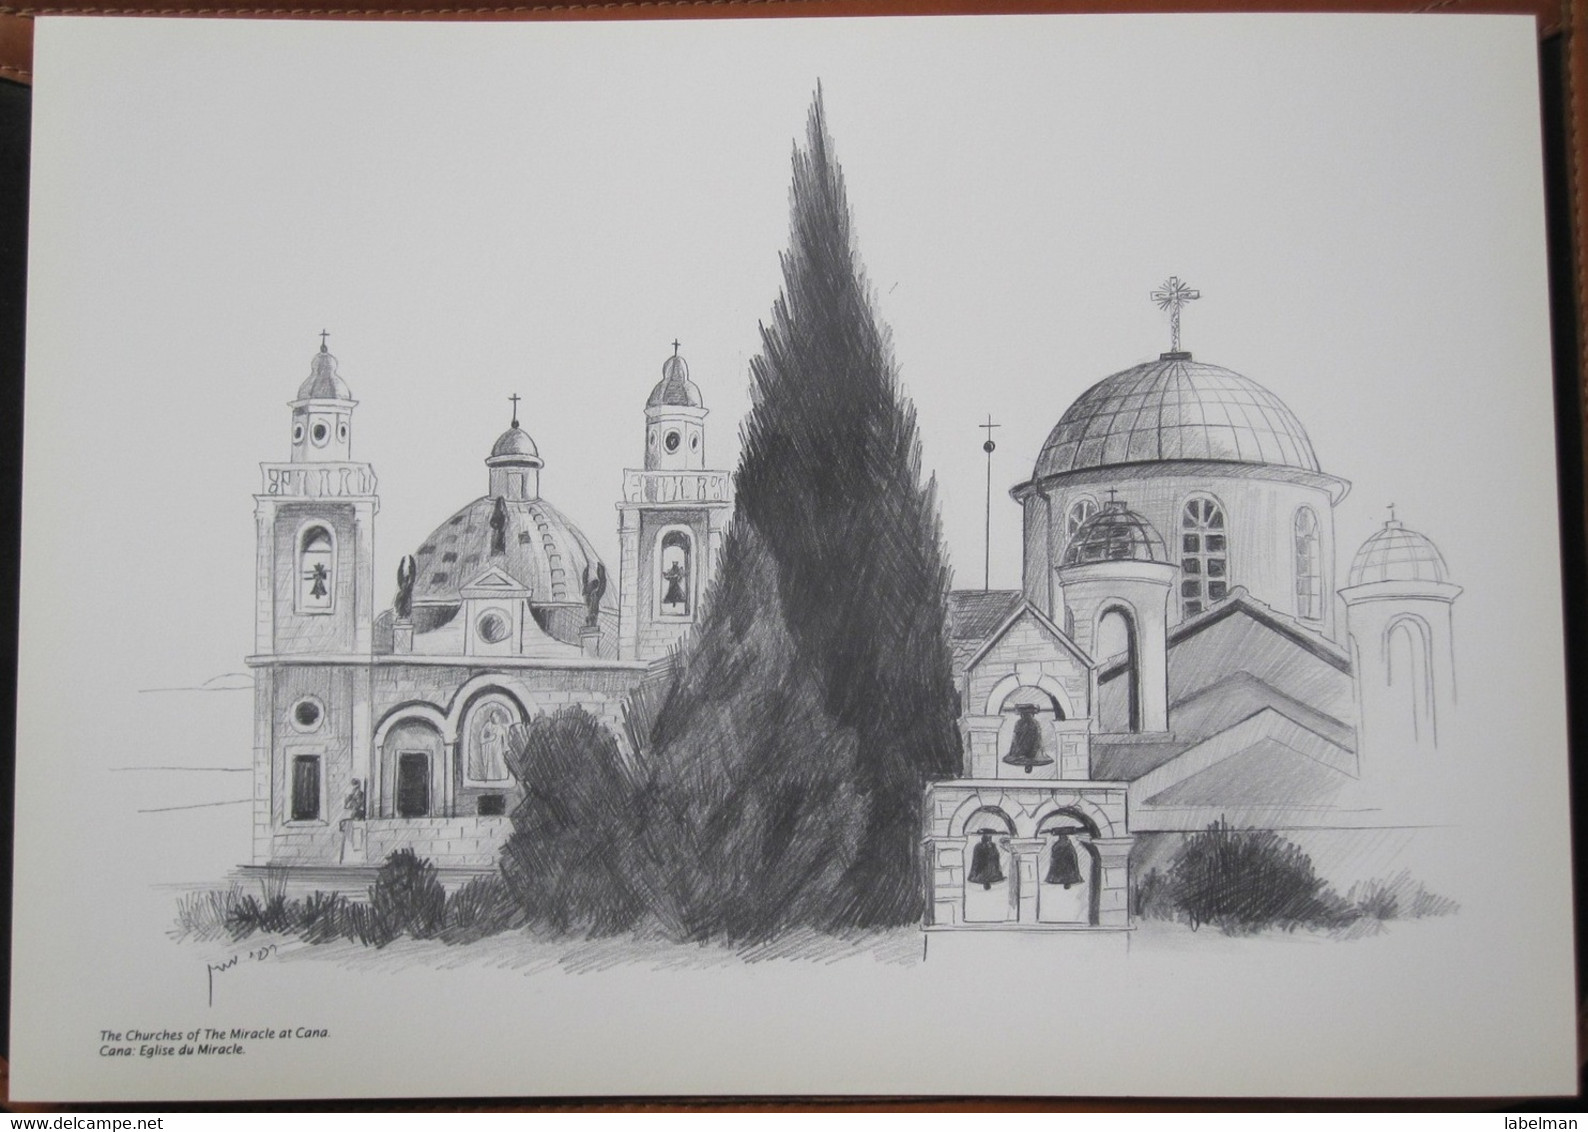 HOLY LAND DRAWING ILLUSTRATION PICTURE PAINTING TERRE SAINTE RAPHY CHURCH OF MIRACLE CANA 23 X 30 - Religion & Esotericism